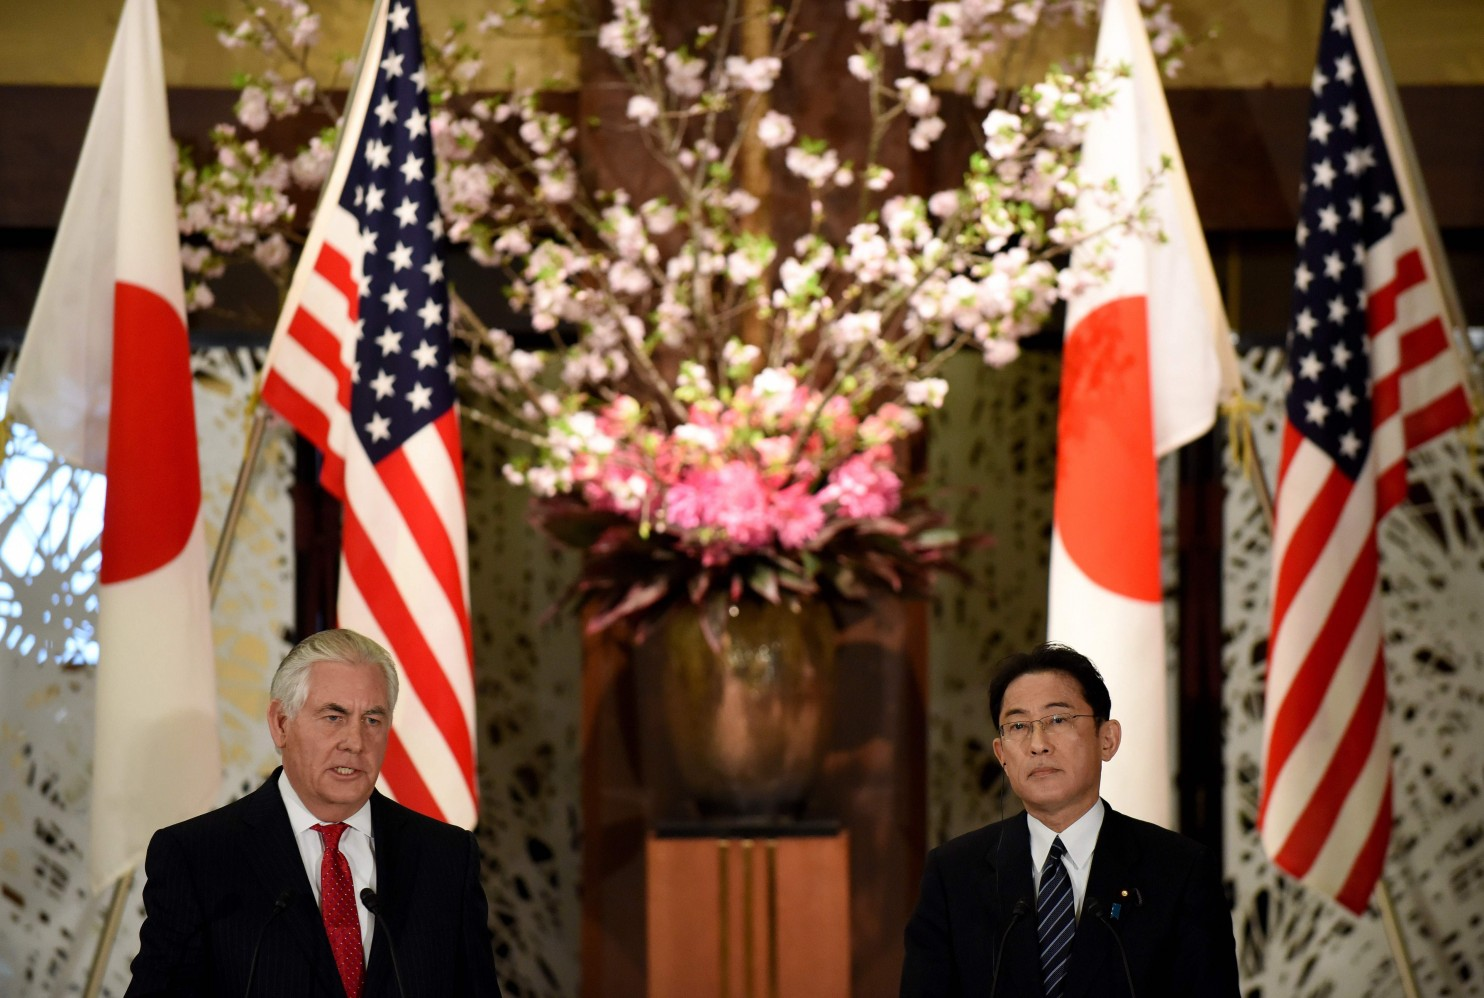 Tillerson says diplomacy with North Korea has 'failed'; Pyongyang warns of war